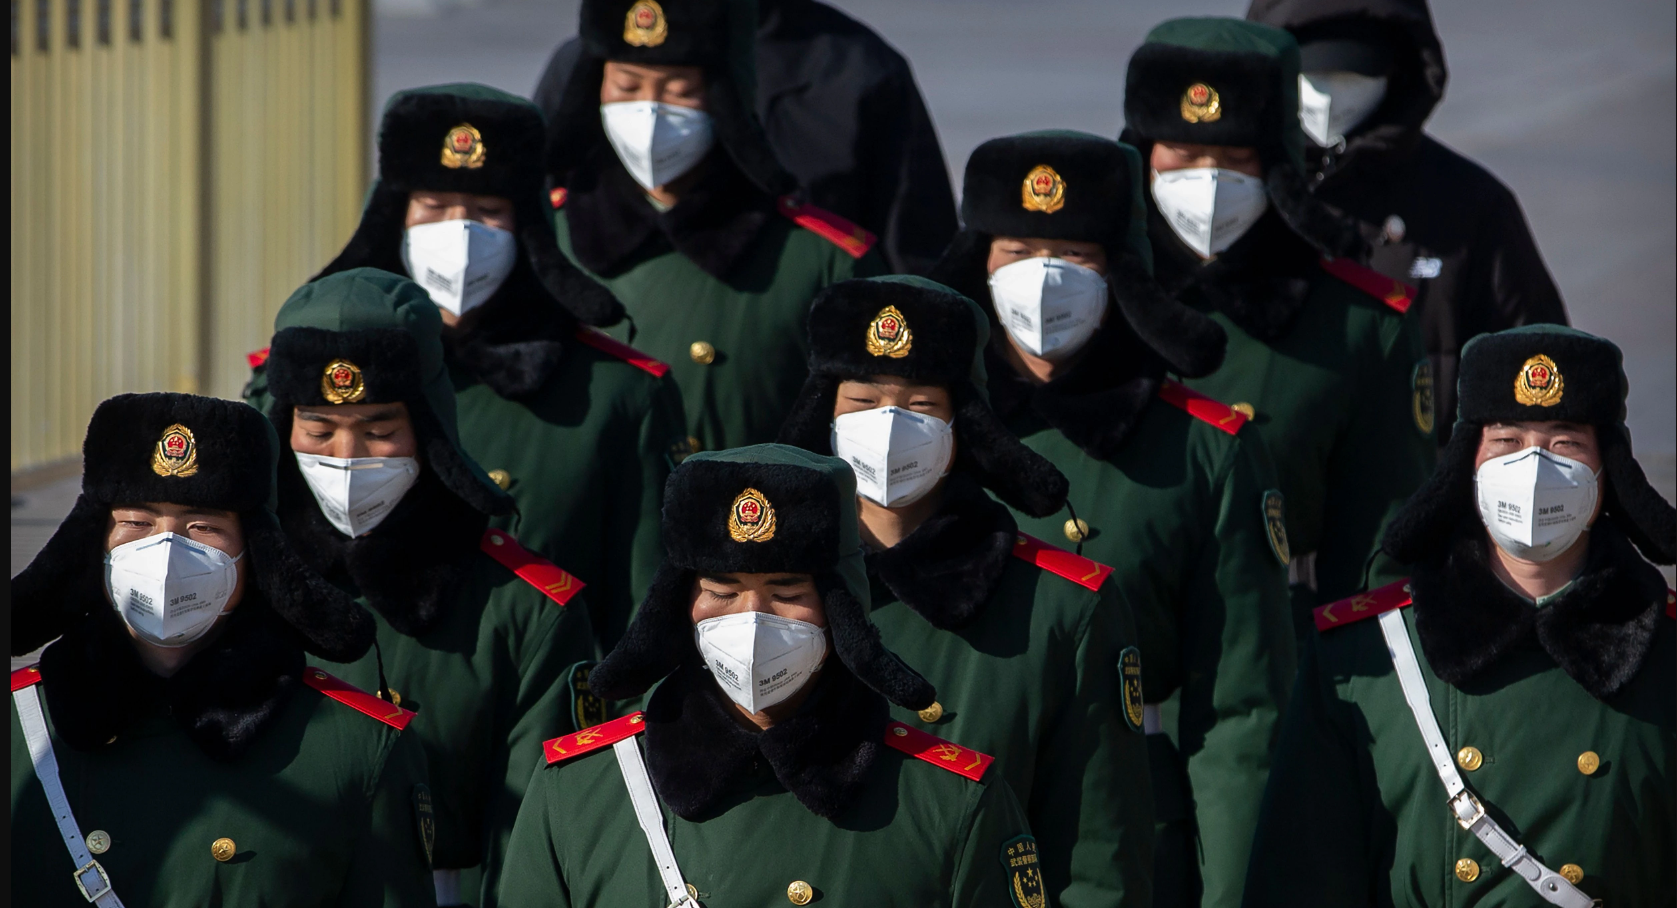 Paramilitary policemen wear face masks as they march in formation near Tiananmen Square in Beijing on February 4. Credit: Mark Schiefelbein/AP